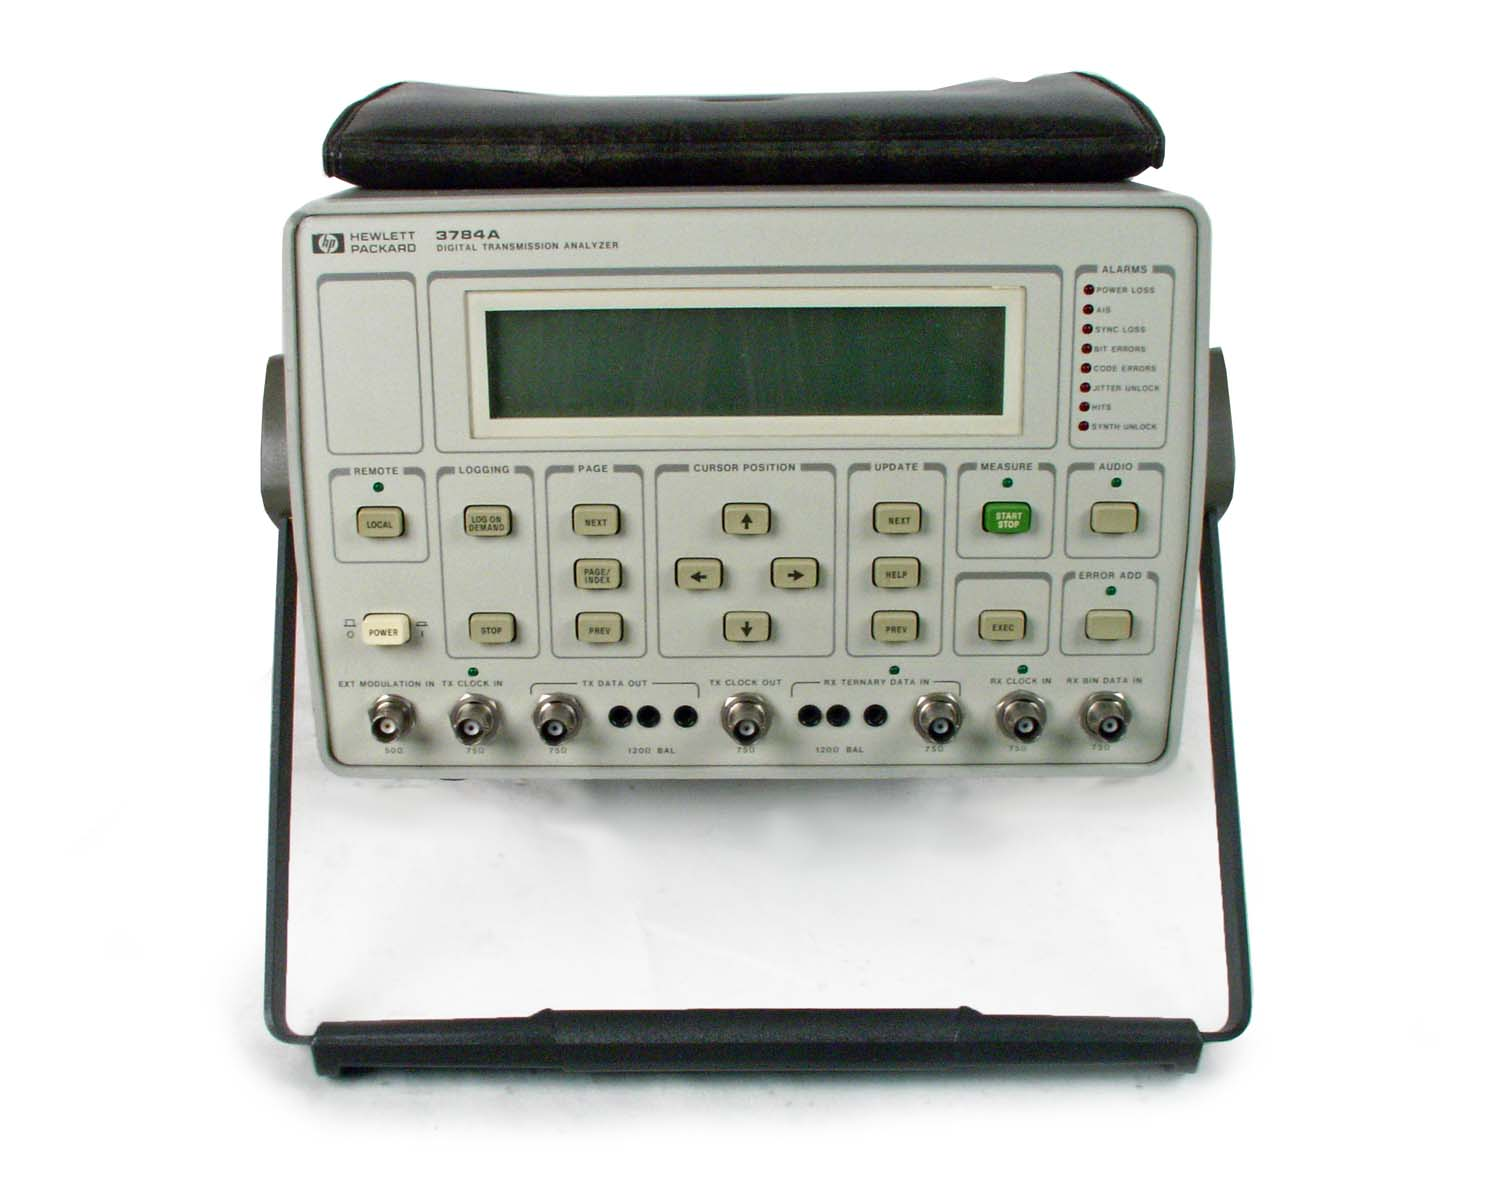 Agilent / HP 3784A for sale